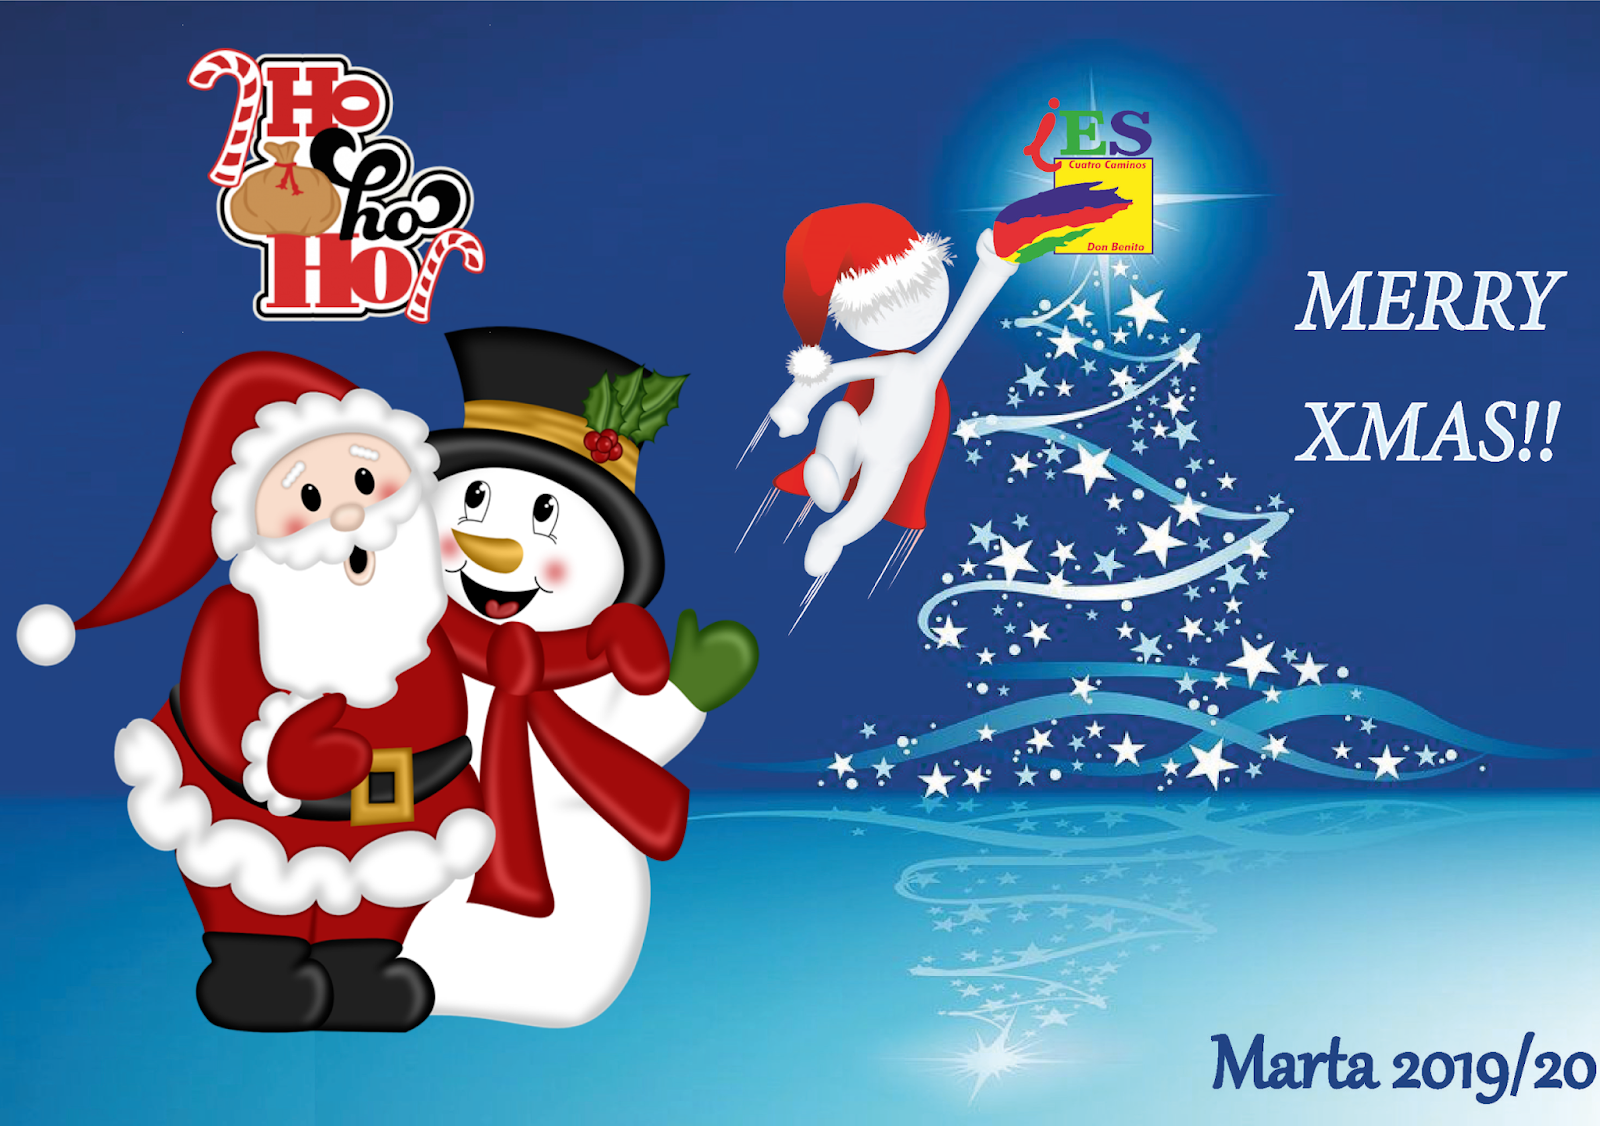 Eso Christmas Contest 2020 Marta English: XMAS TIME!!!!